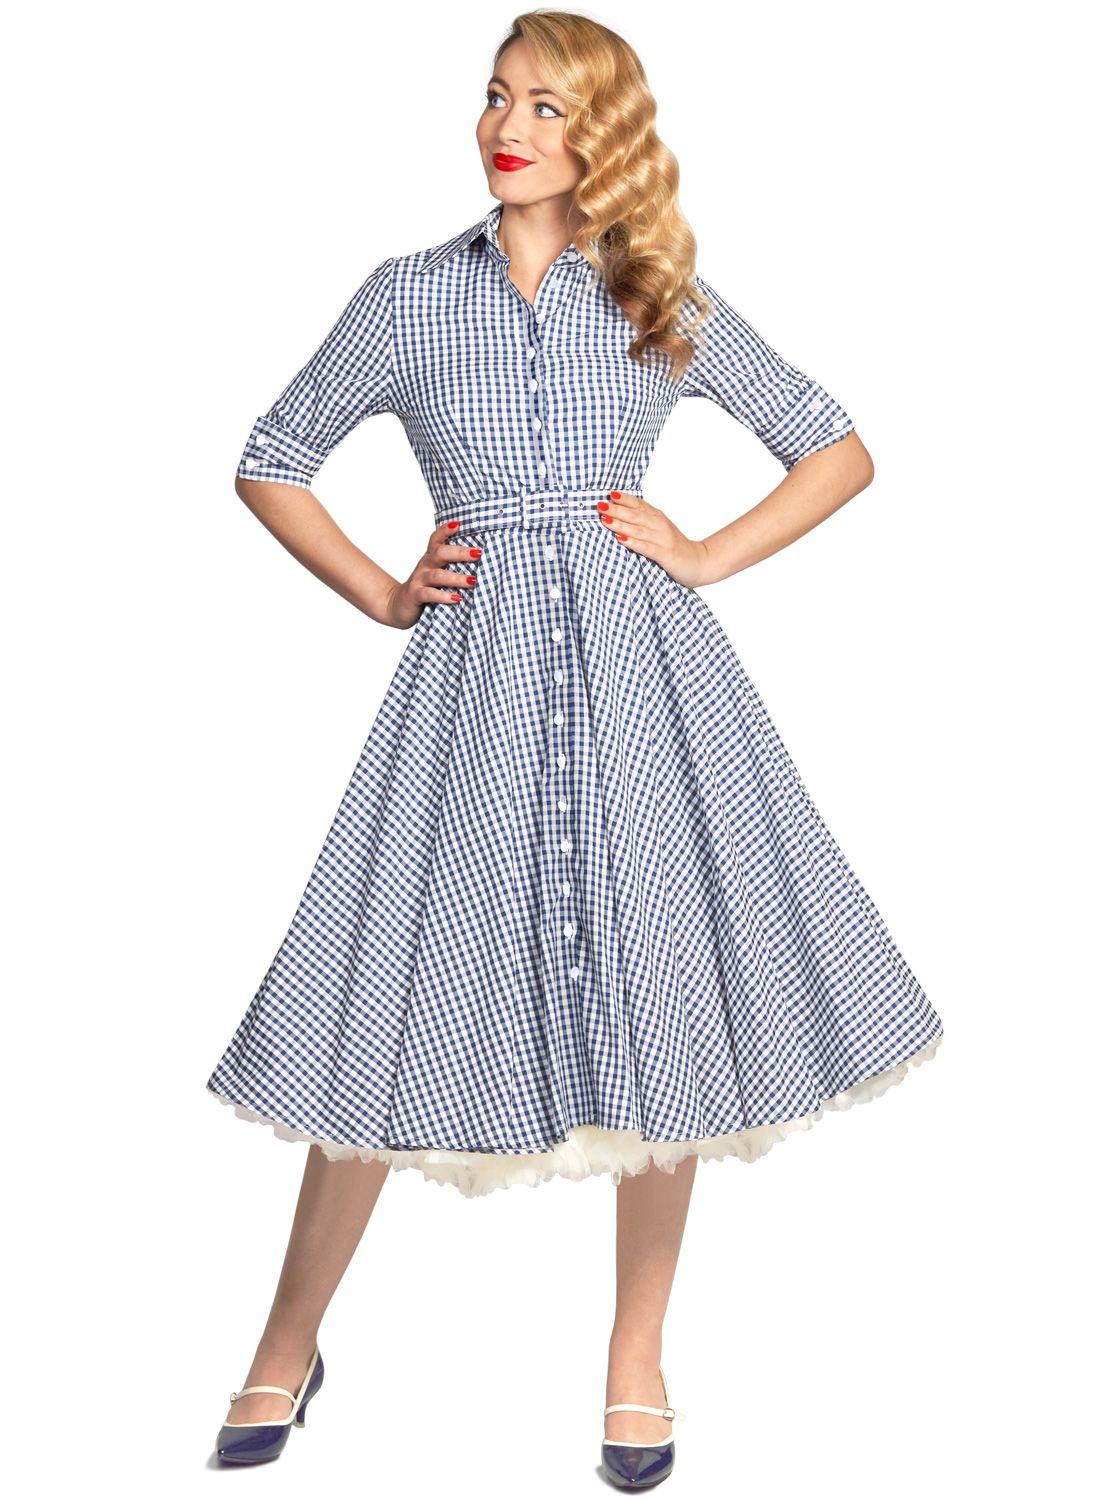 Way Out West  Navy Gingham Vintage 50s Style Swing Dress - British Retro.   2cd9ecef9a5f